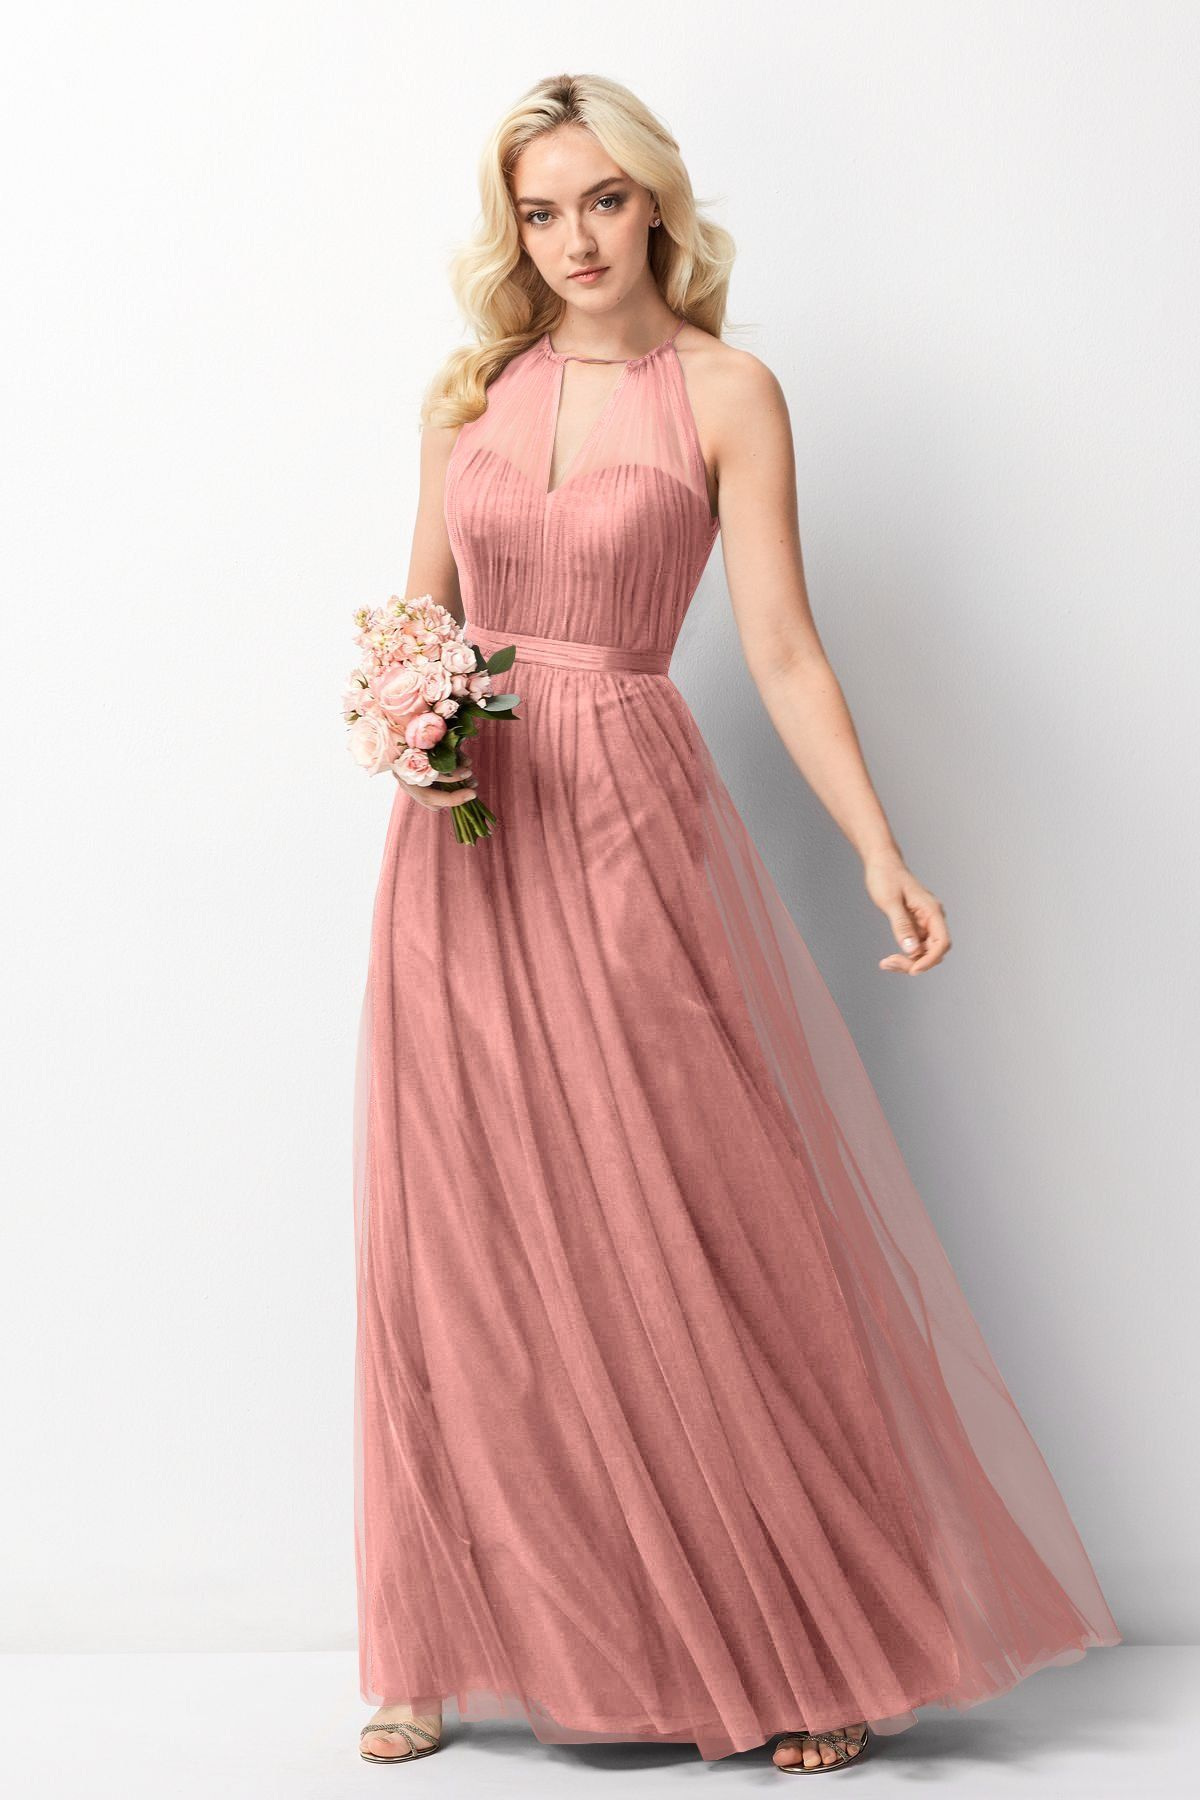 WTOO by Watters, #242 Coral $194   dresses we saw in person   Pinterest